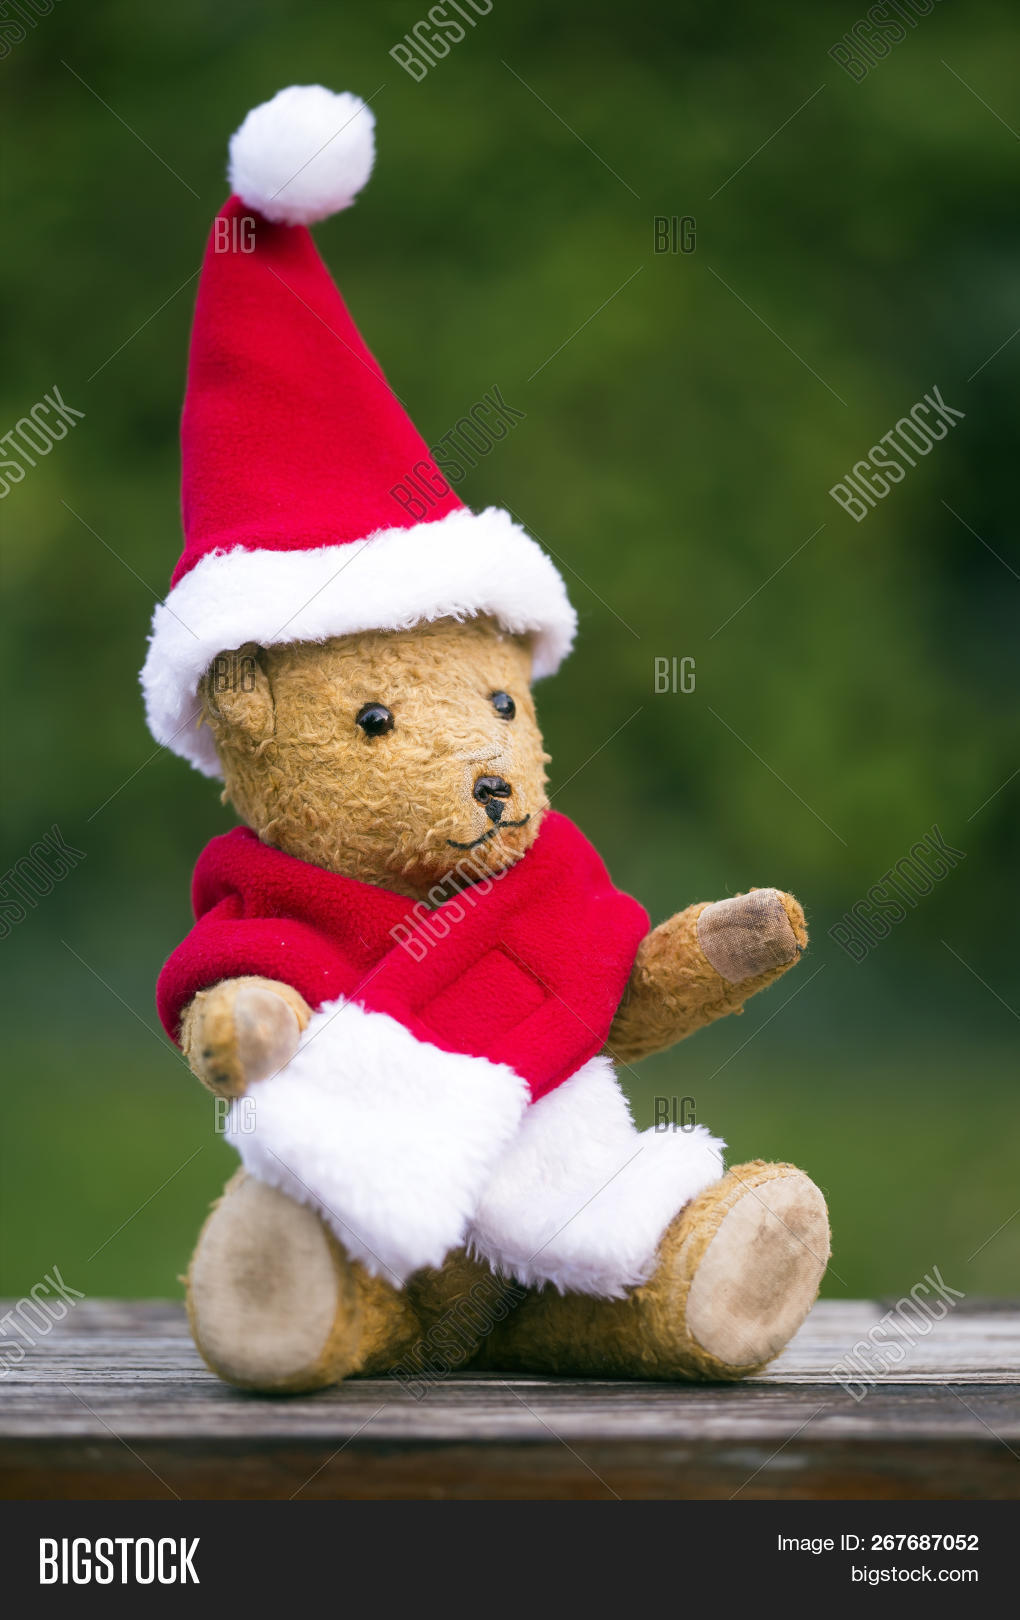 876d821888e03 Happy Christmas Toy Teddy Bear Wearing Red Santa Hat - Gift For Children